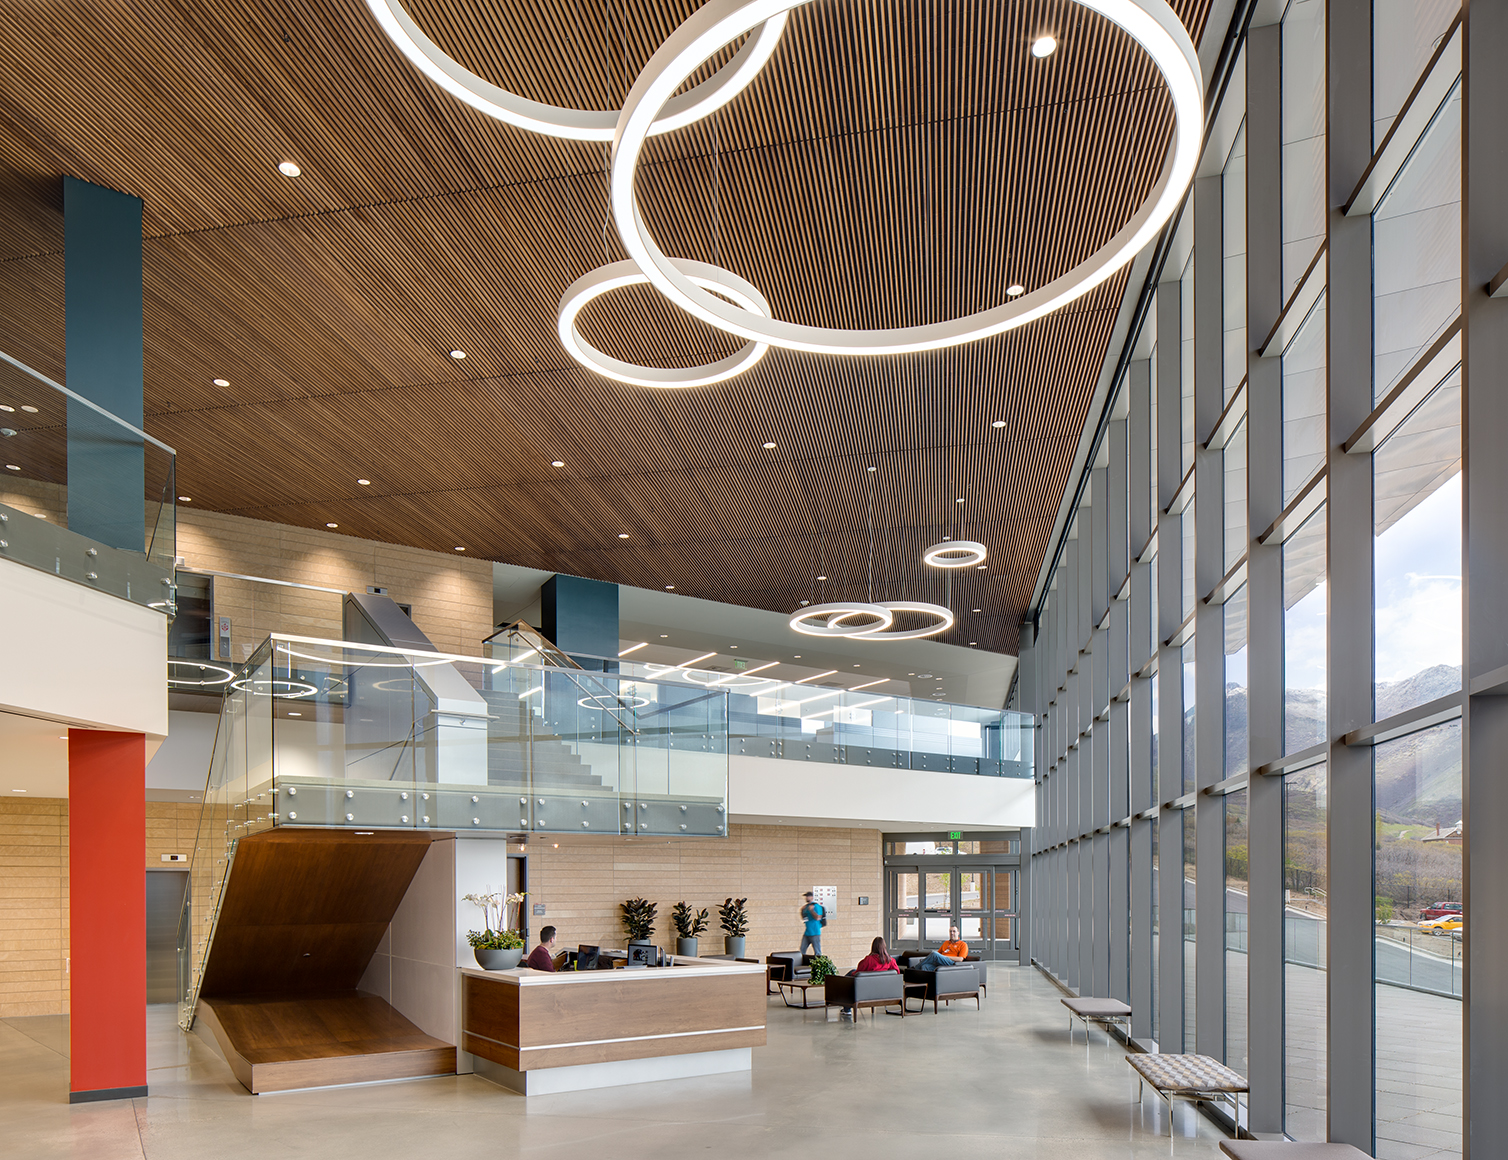 Interior view of a commmercial lobby space of a prominent bio tech company with tall glass windows, a two tiered floor plan, wooden ceilings and circular lights hanging from the ceiling.